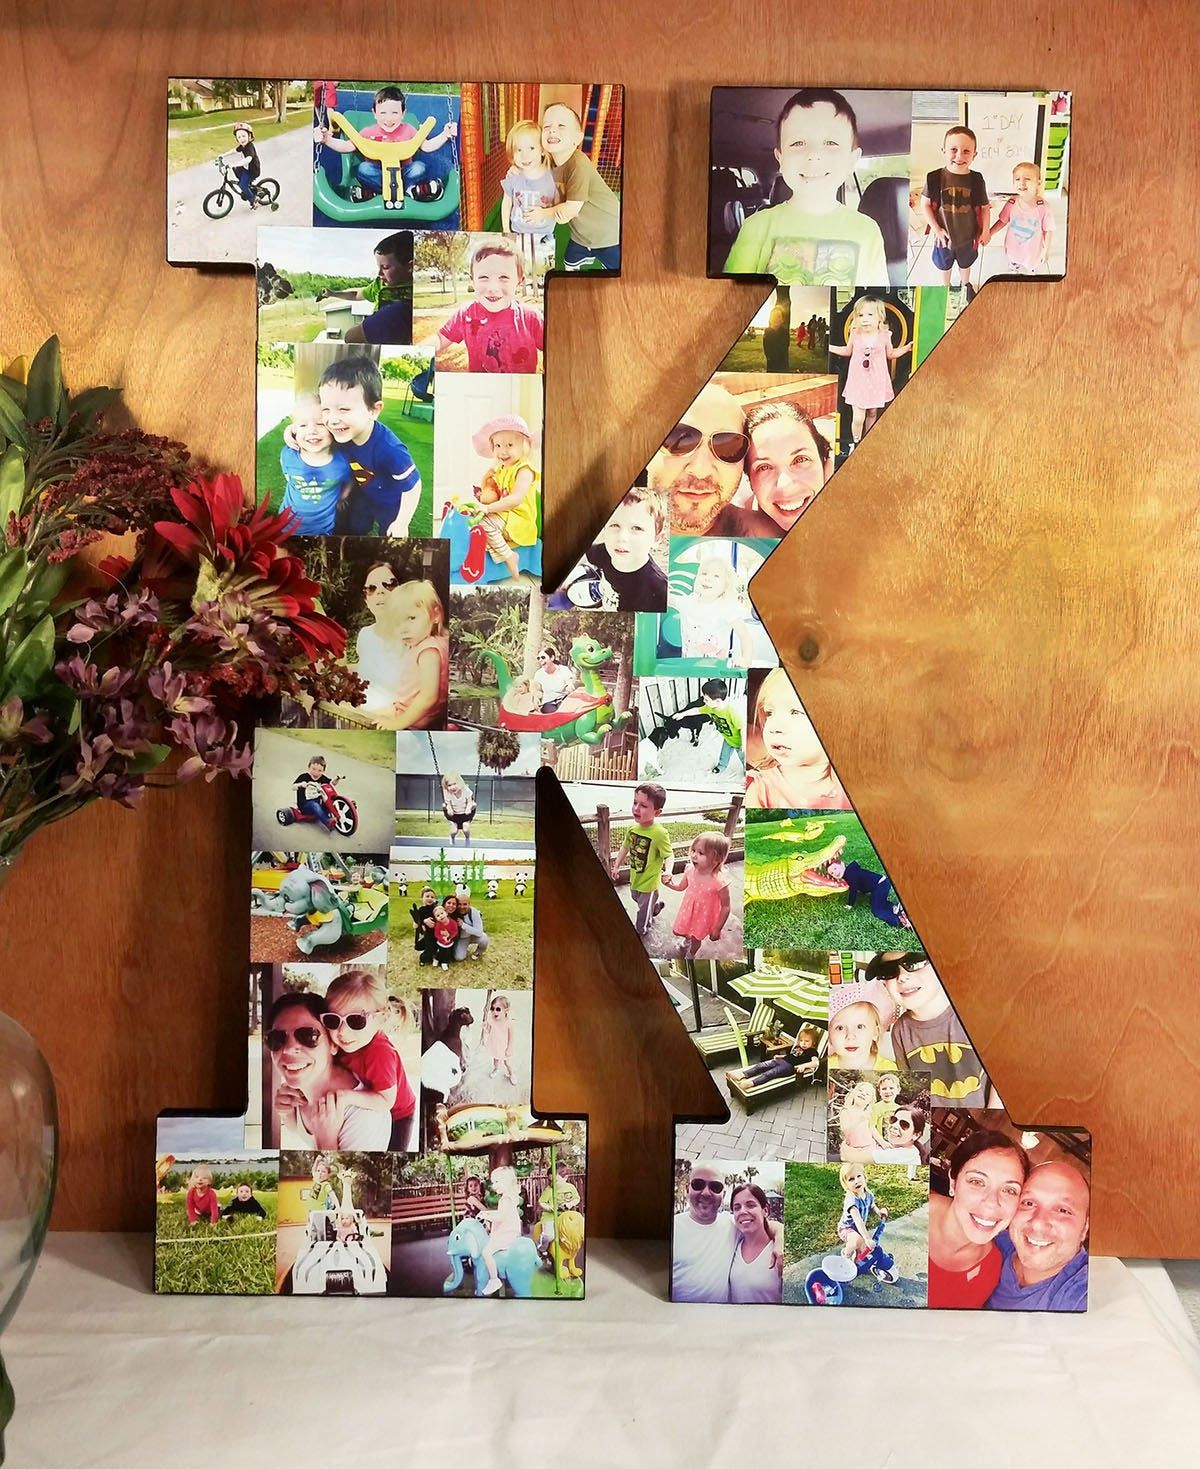 42+ Letter photo collage maker ideas in 2021